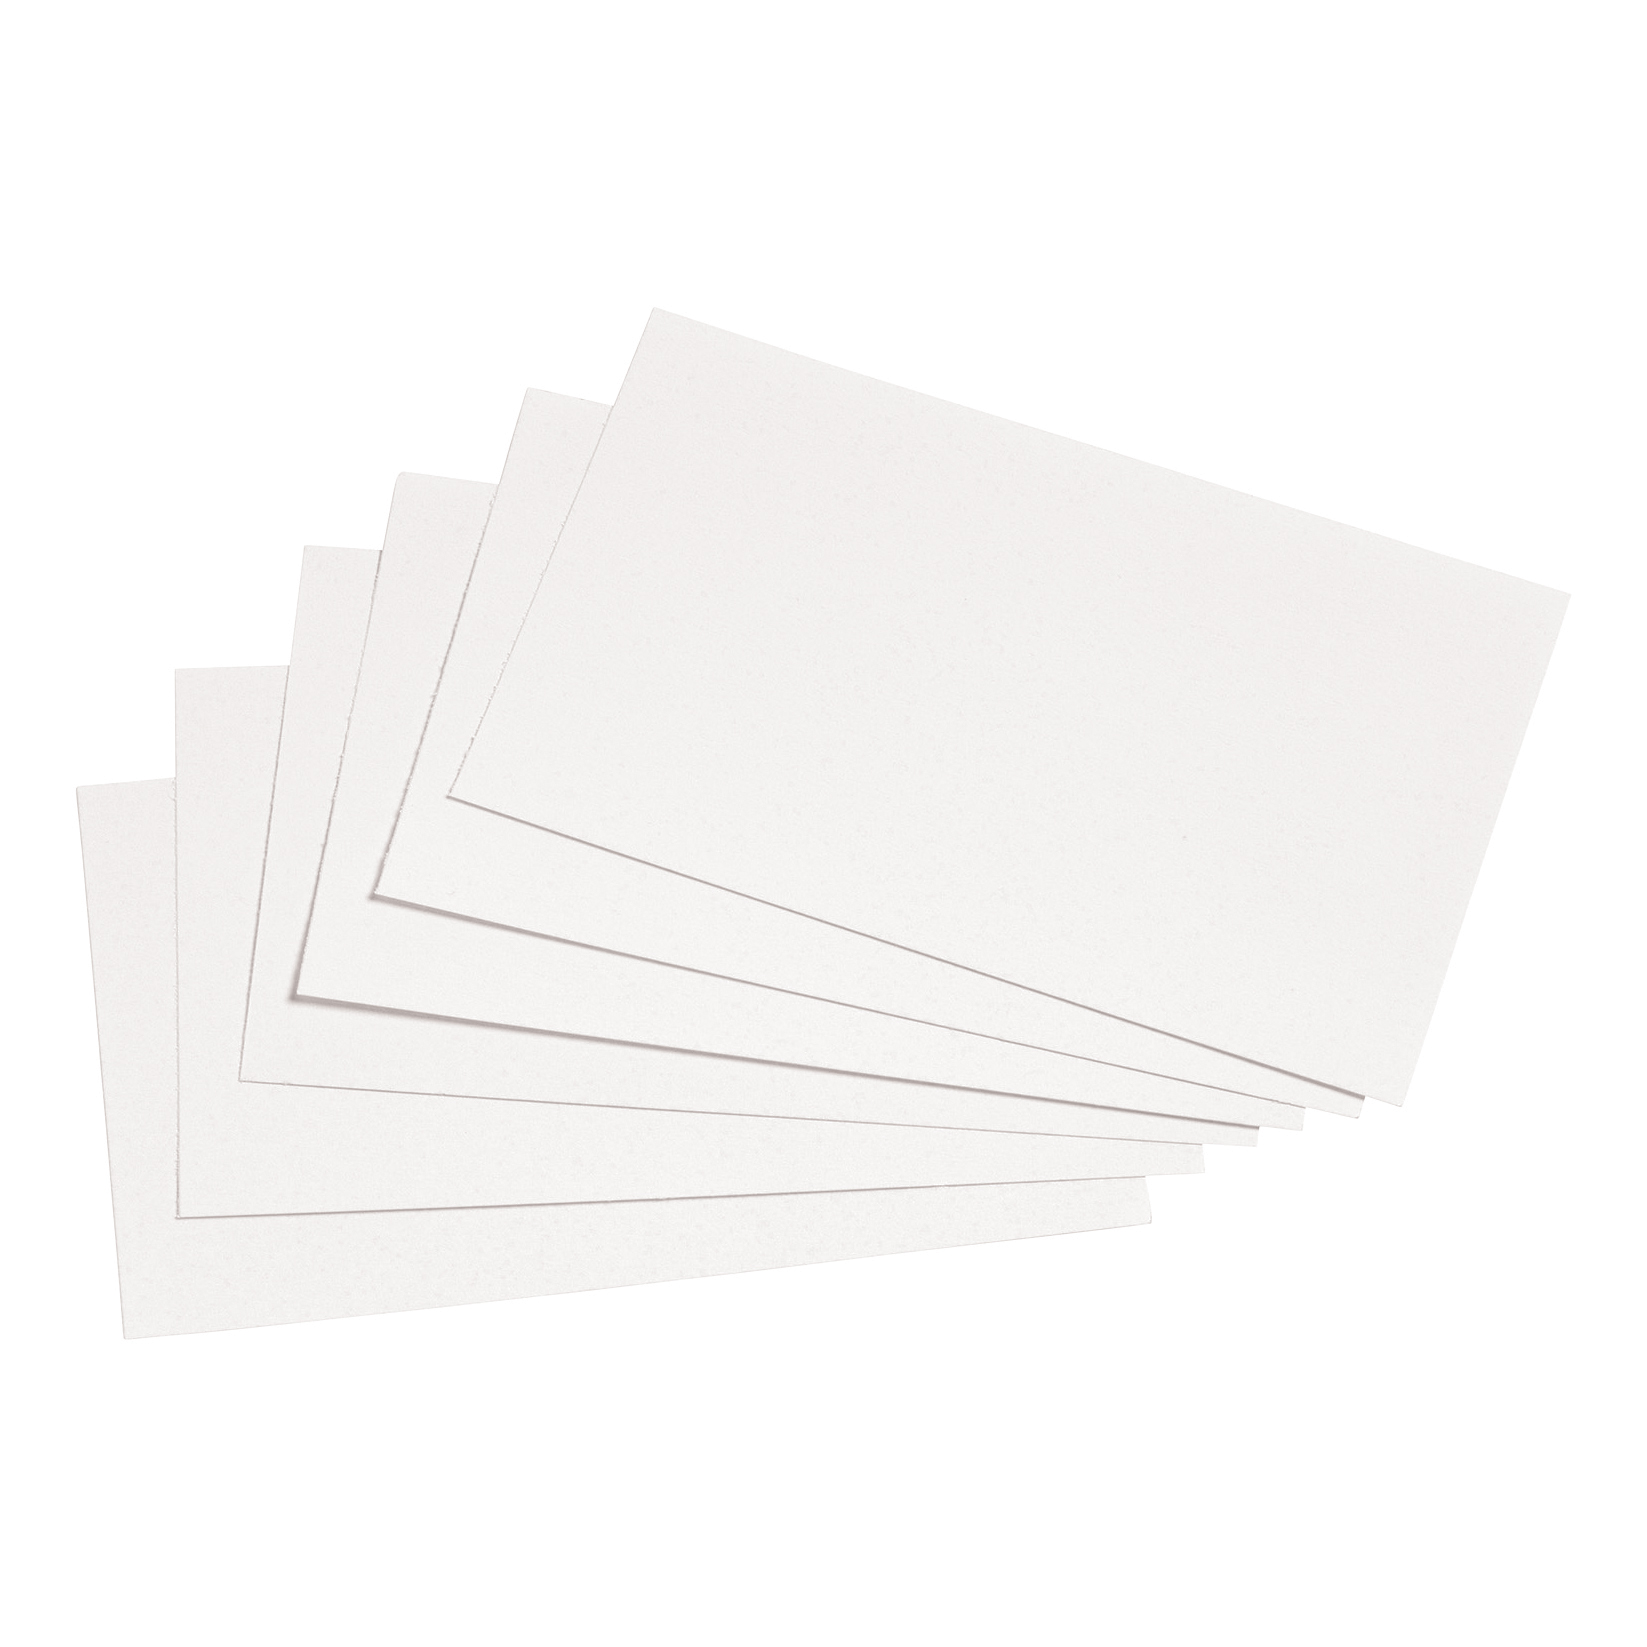 5 Star Office Record Cards Blank 5x3in 127x76mm White [Pack 100]